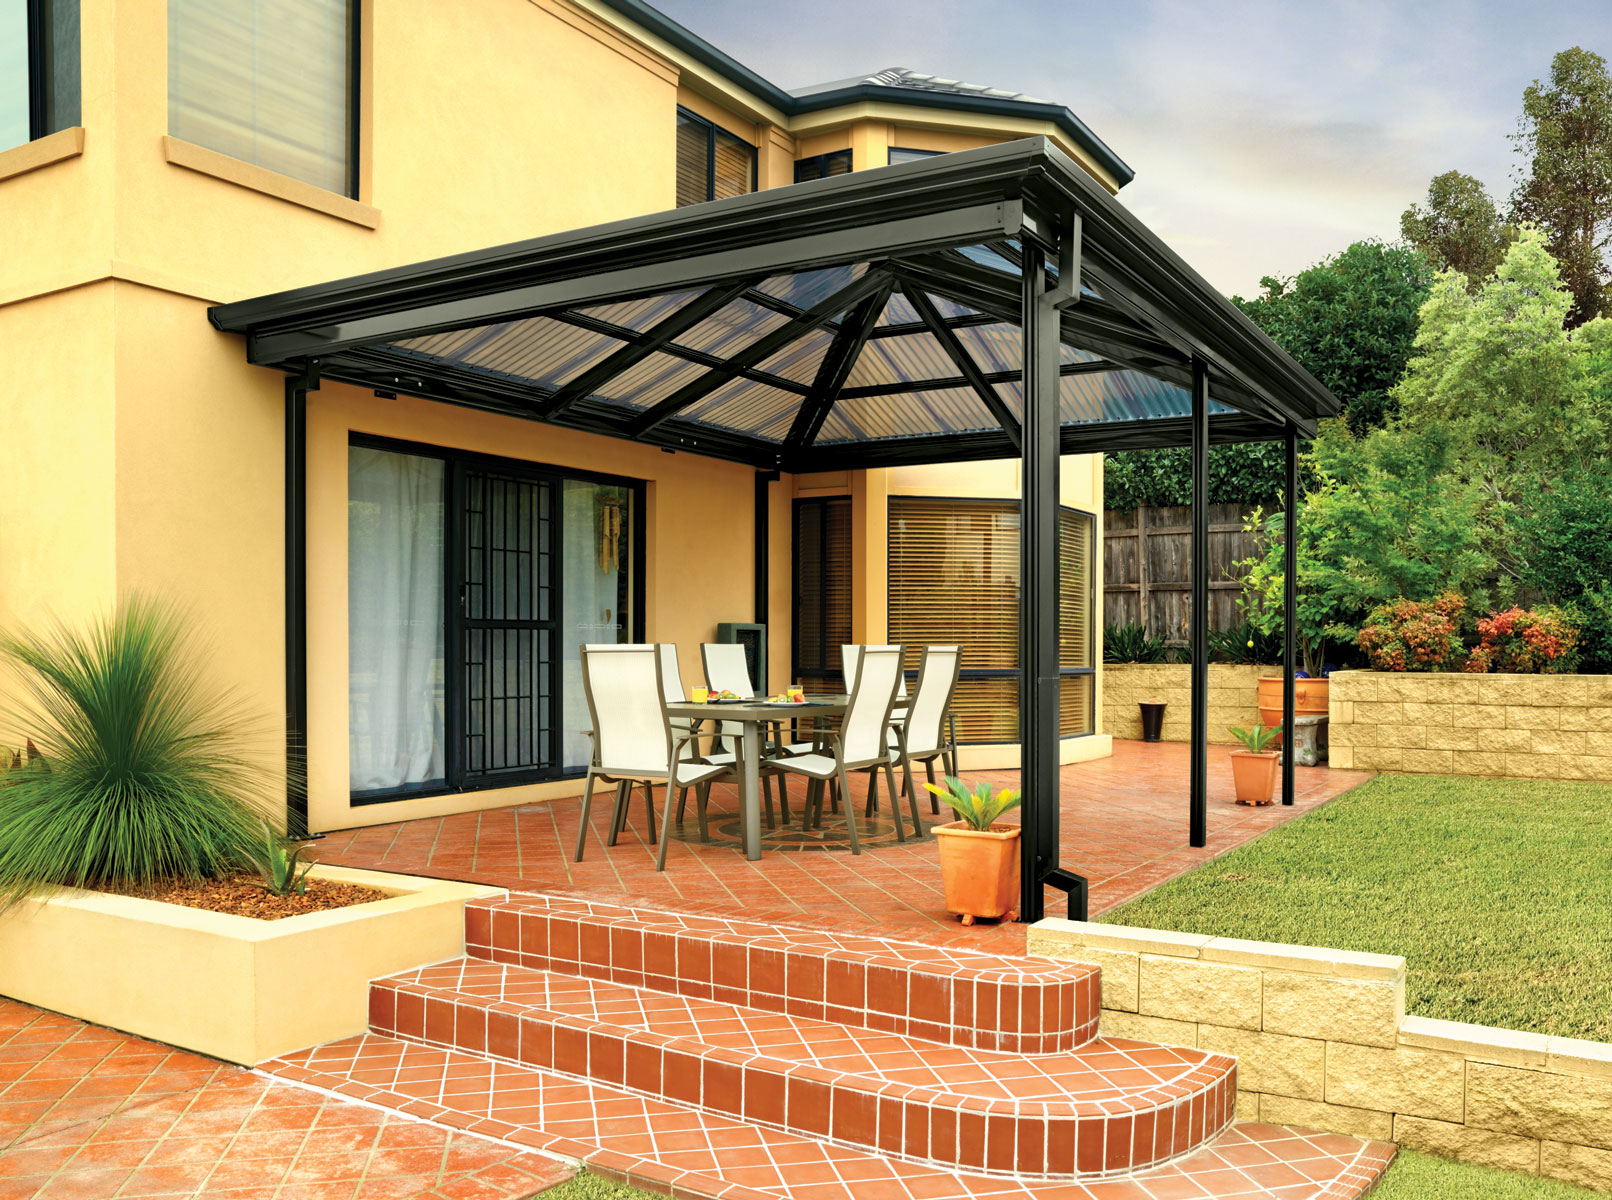 Patios With A Gazebo Style Roof Hip End Or Gazebo Roof Patio